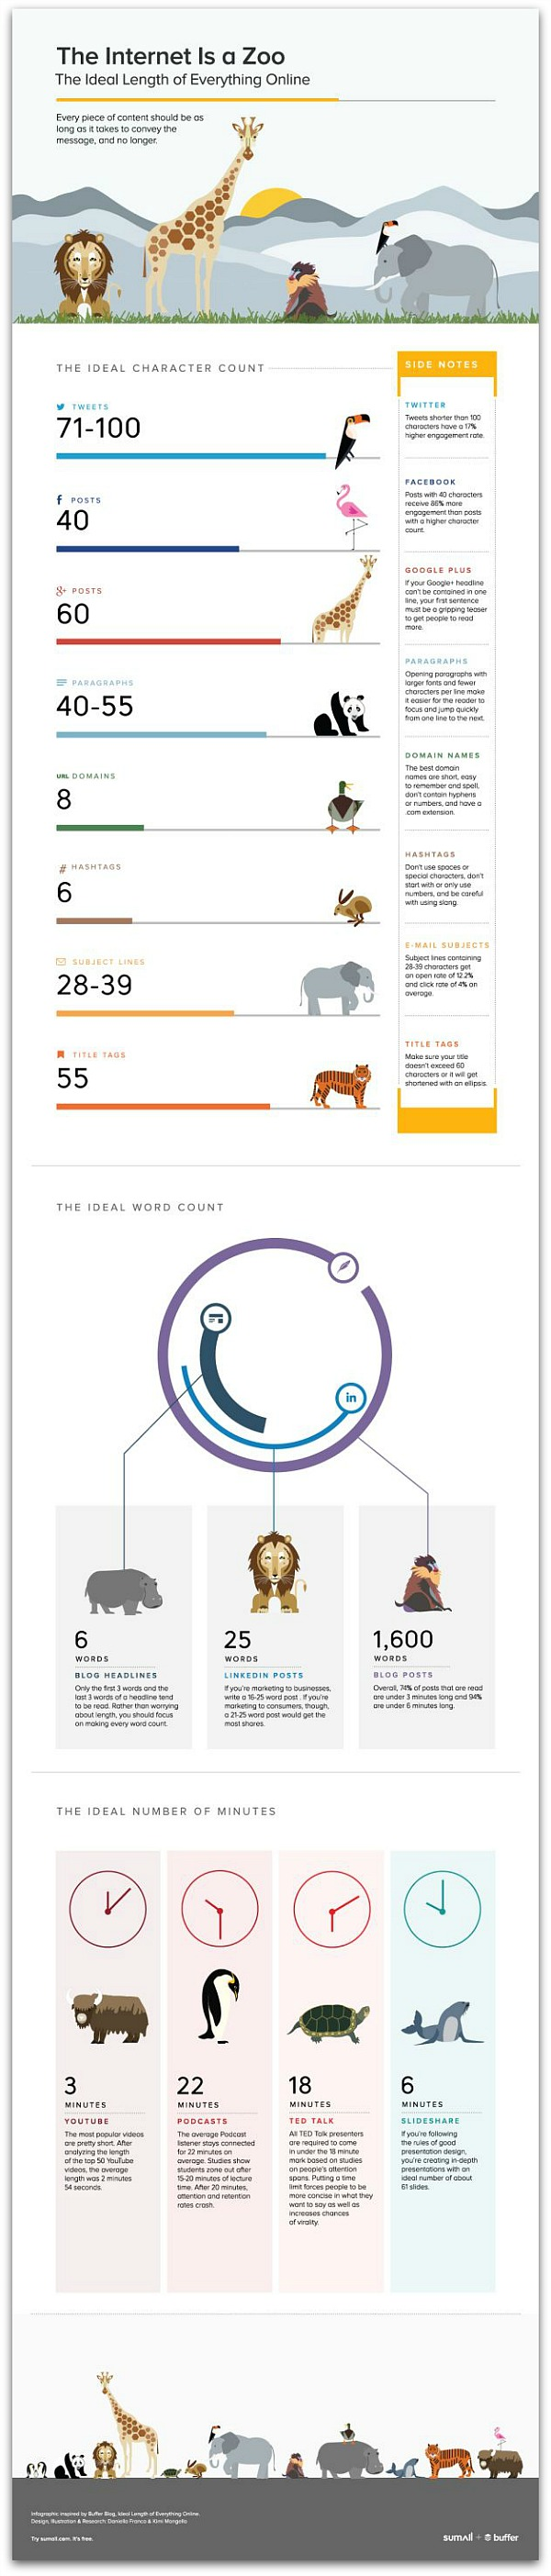 Ideal_Length_of_Online_Content_Infographic